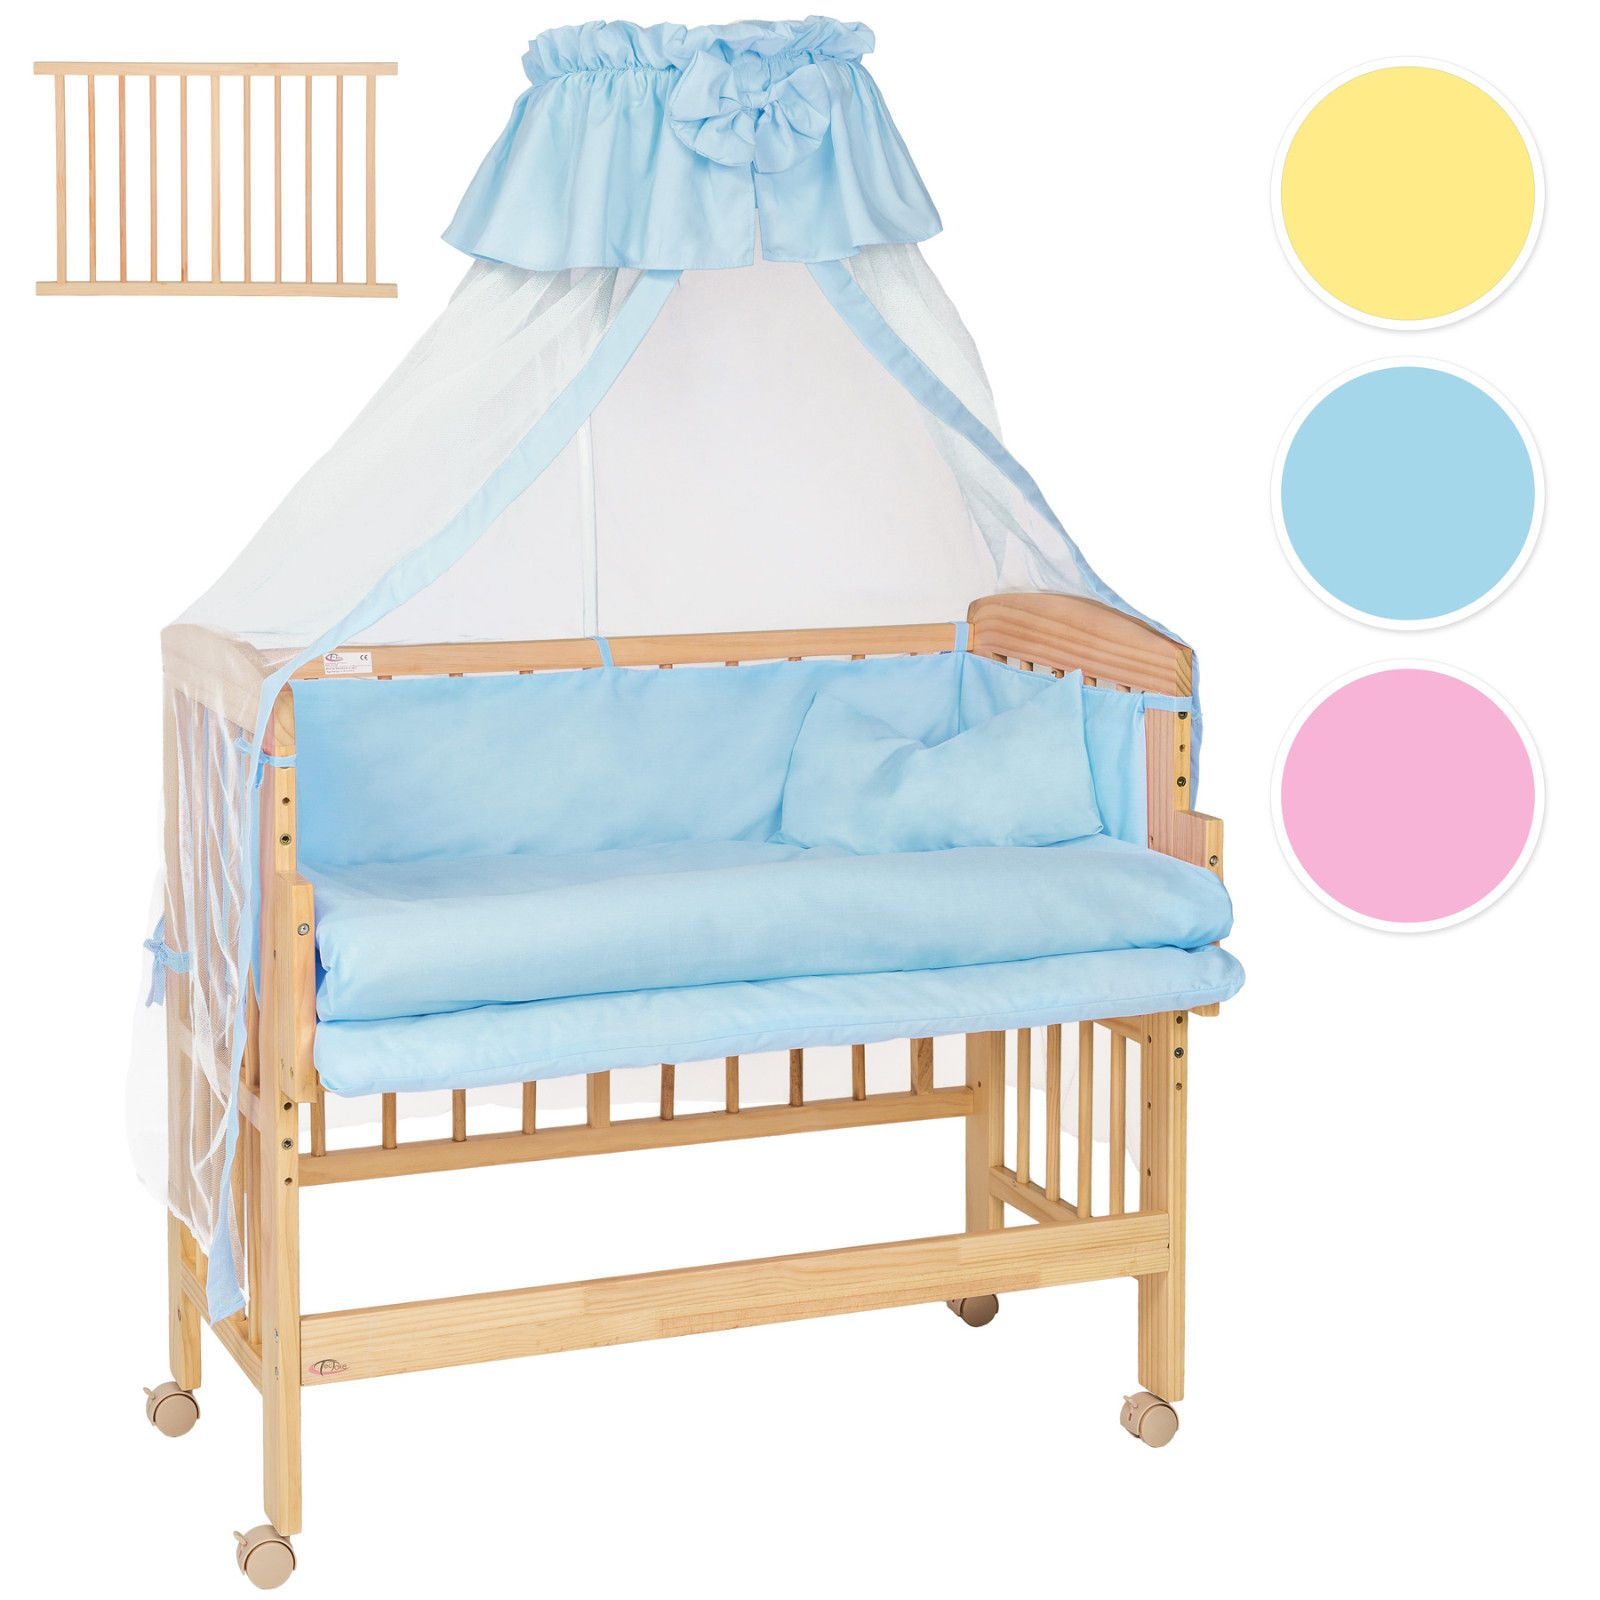 Crib heights for babies - Wooden Bedside Cot Variable Height Nursery Furniture Baby Crib View More On